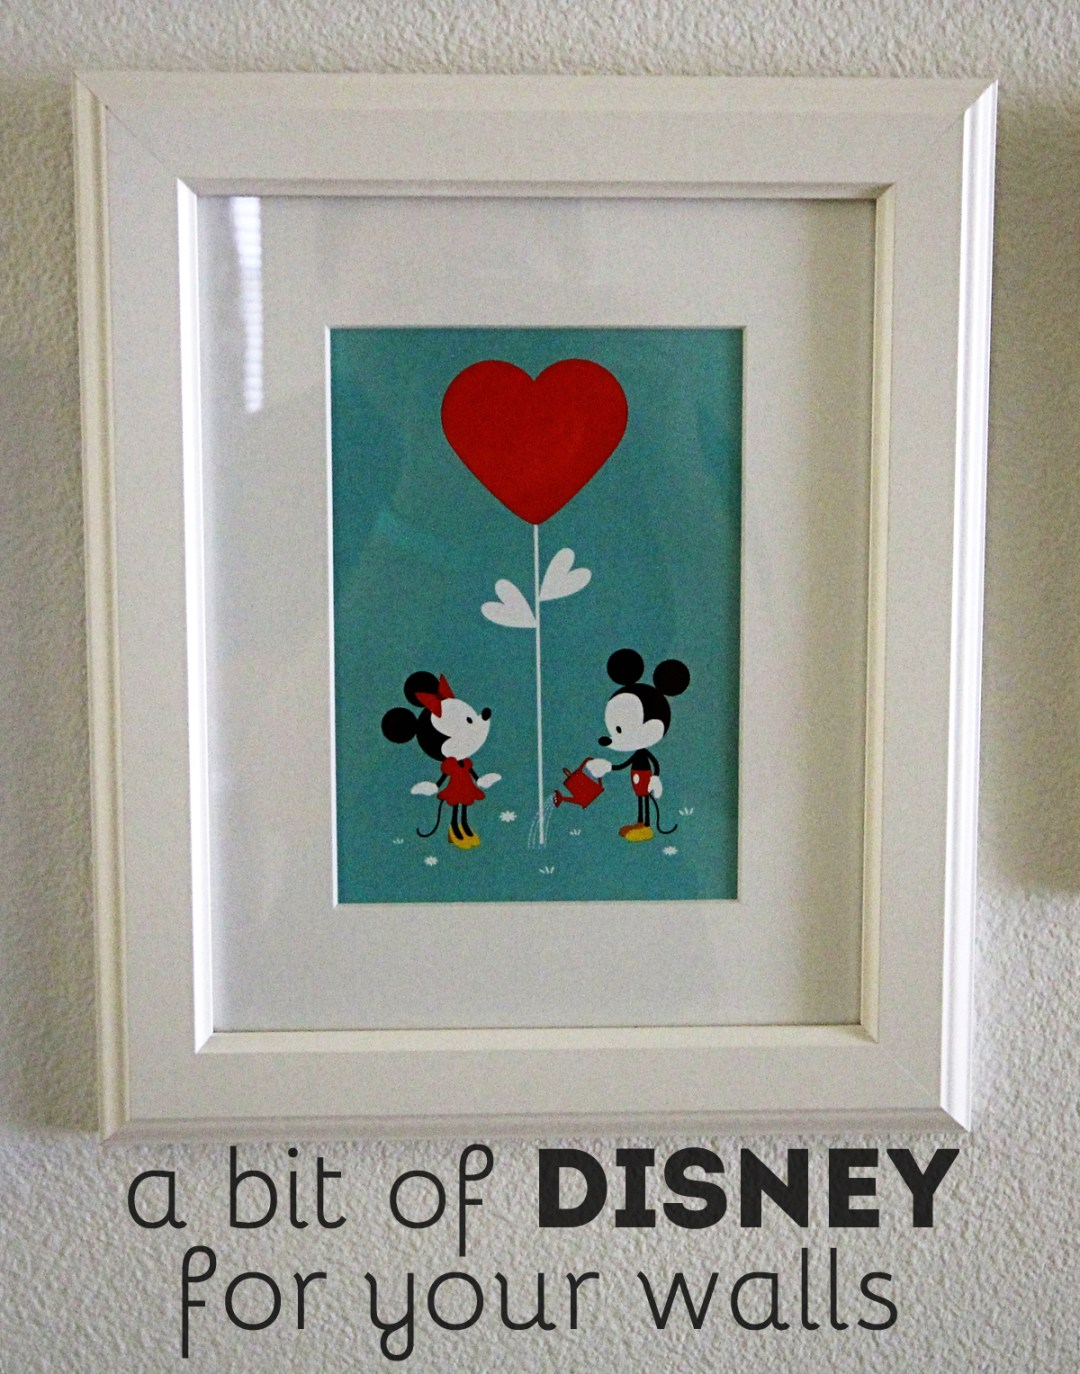 Disney Love - www.randomolive.com